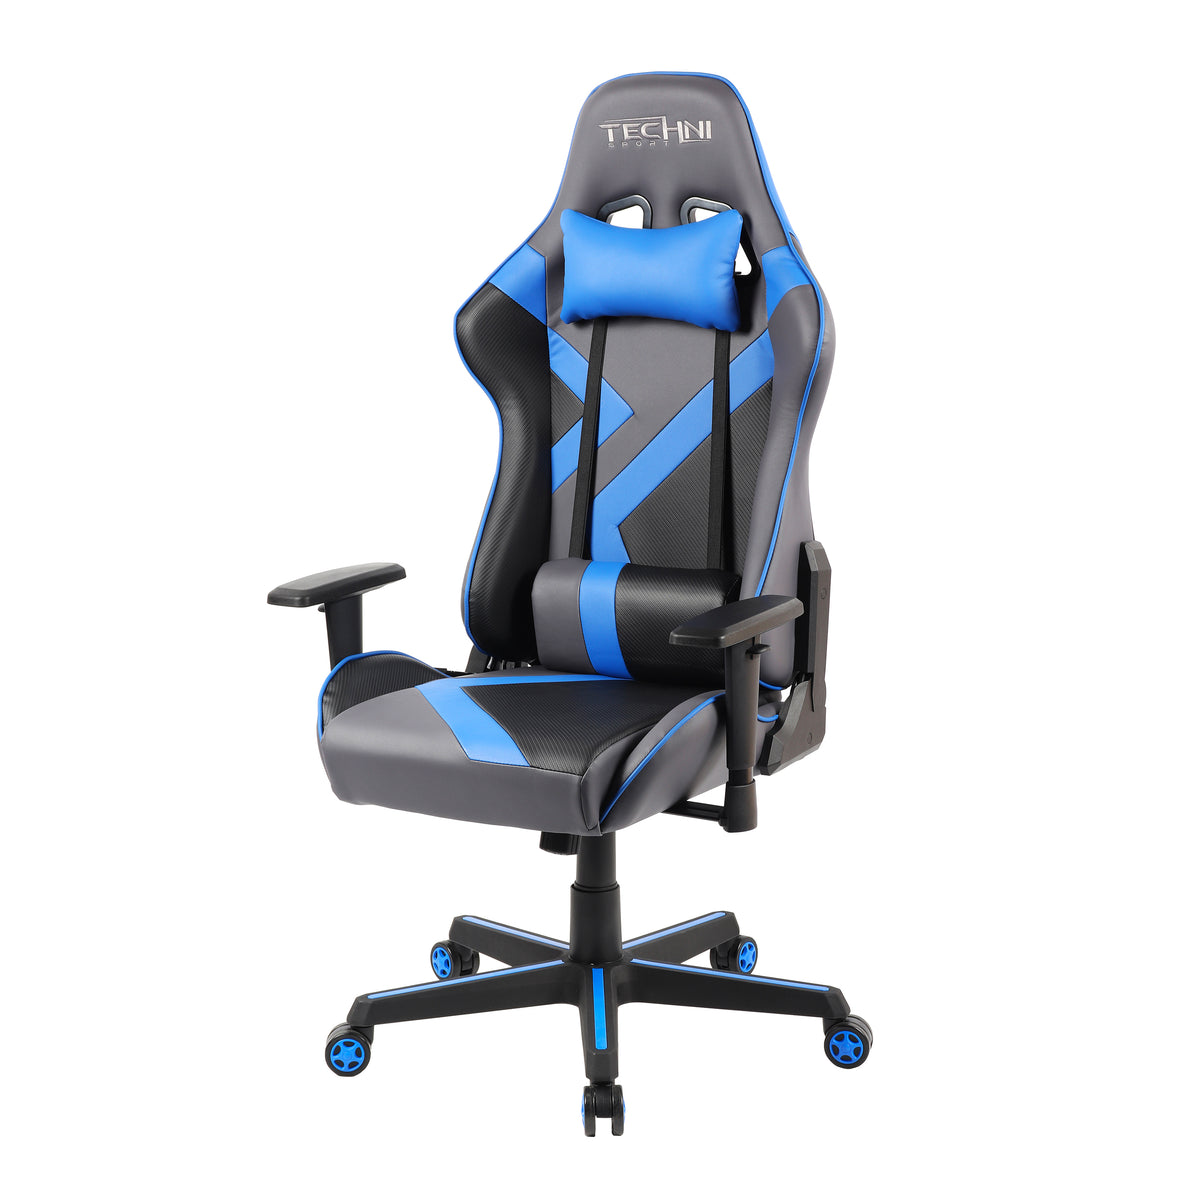 Techni Sport TS-70 Office-PC Gaming Chair, Blue